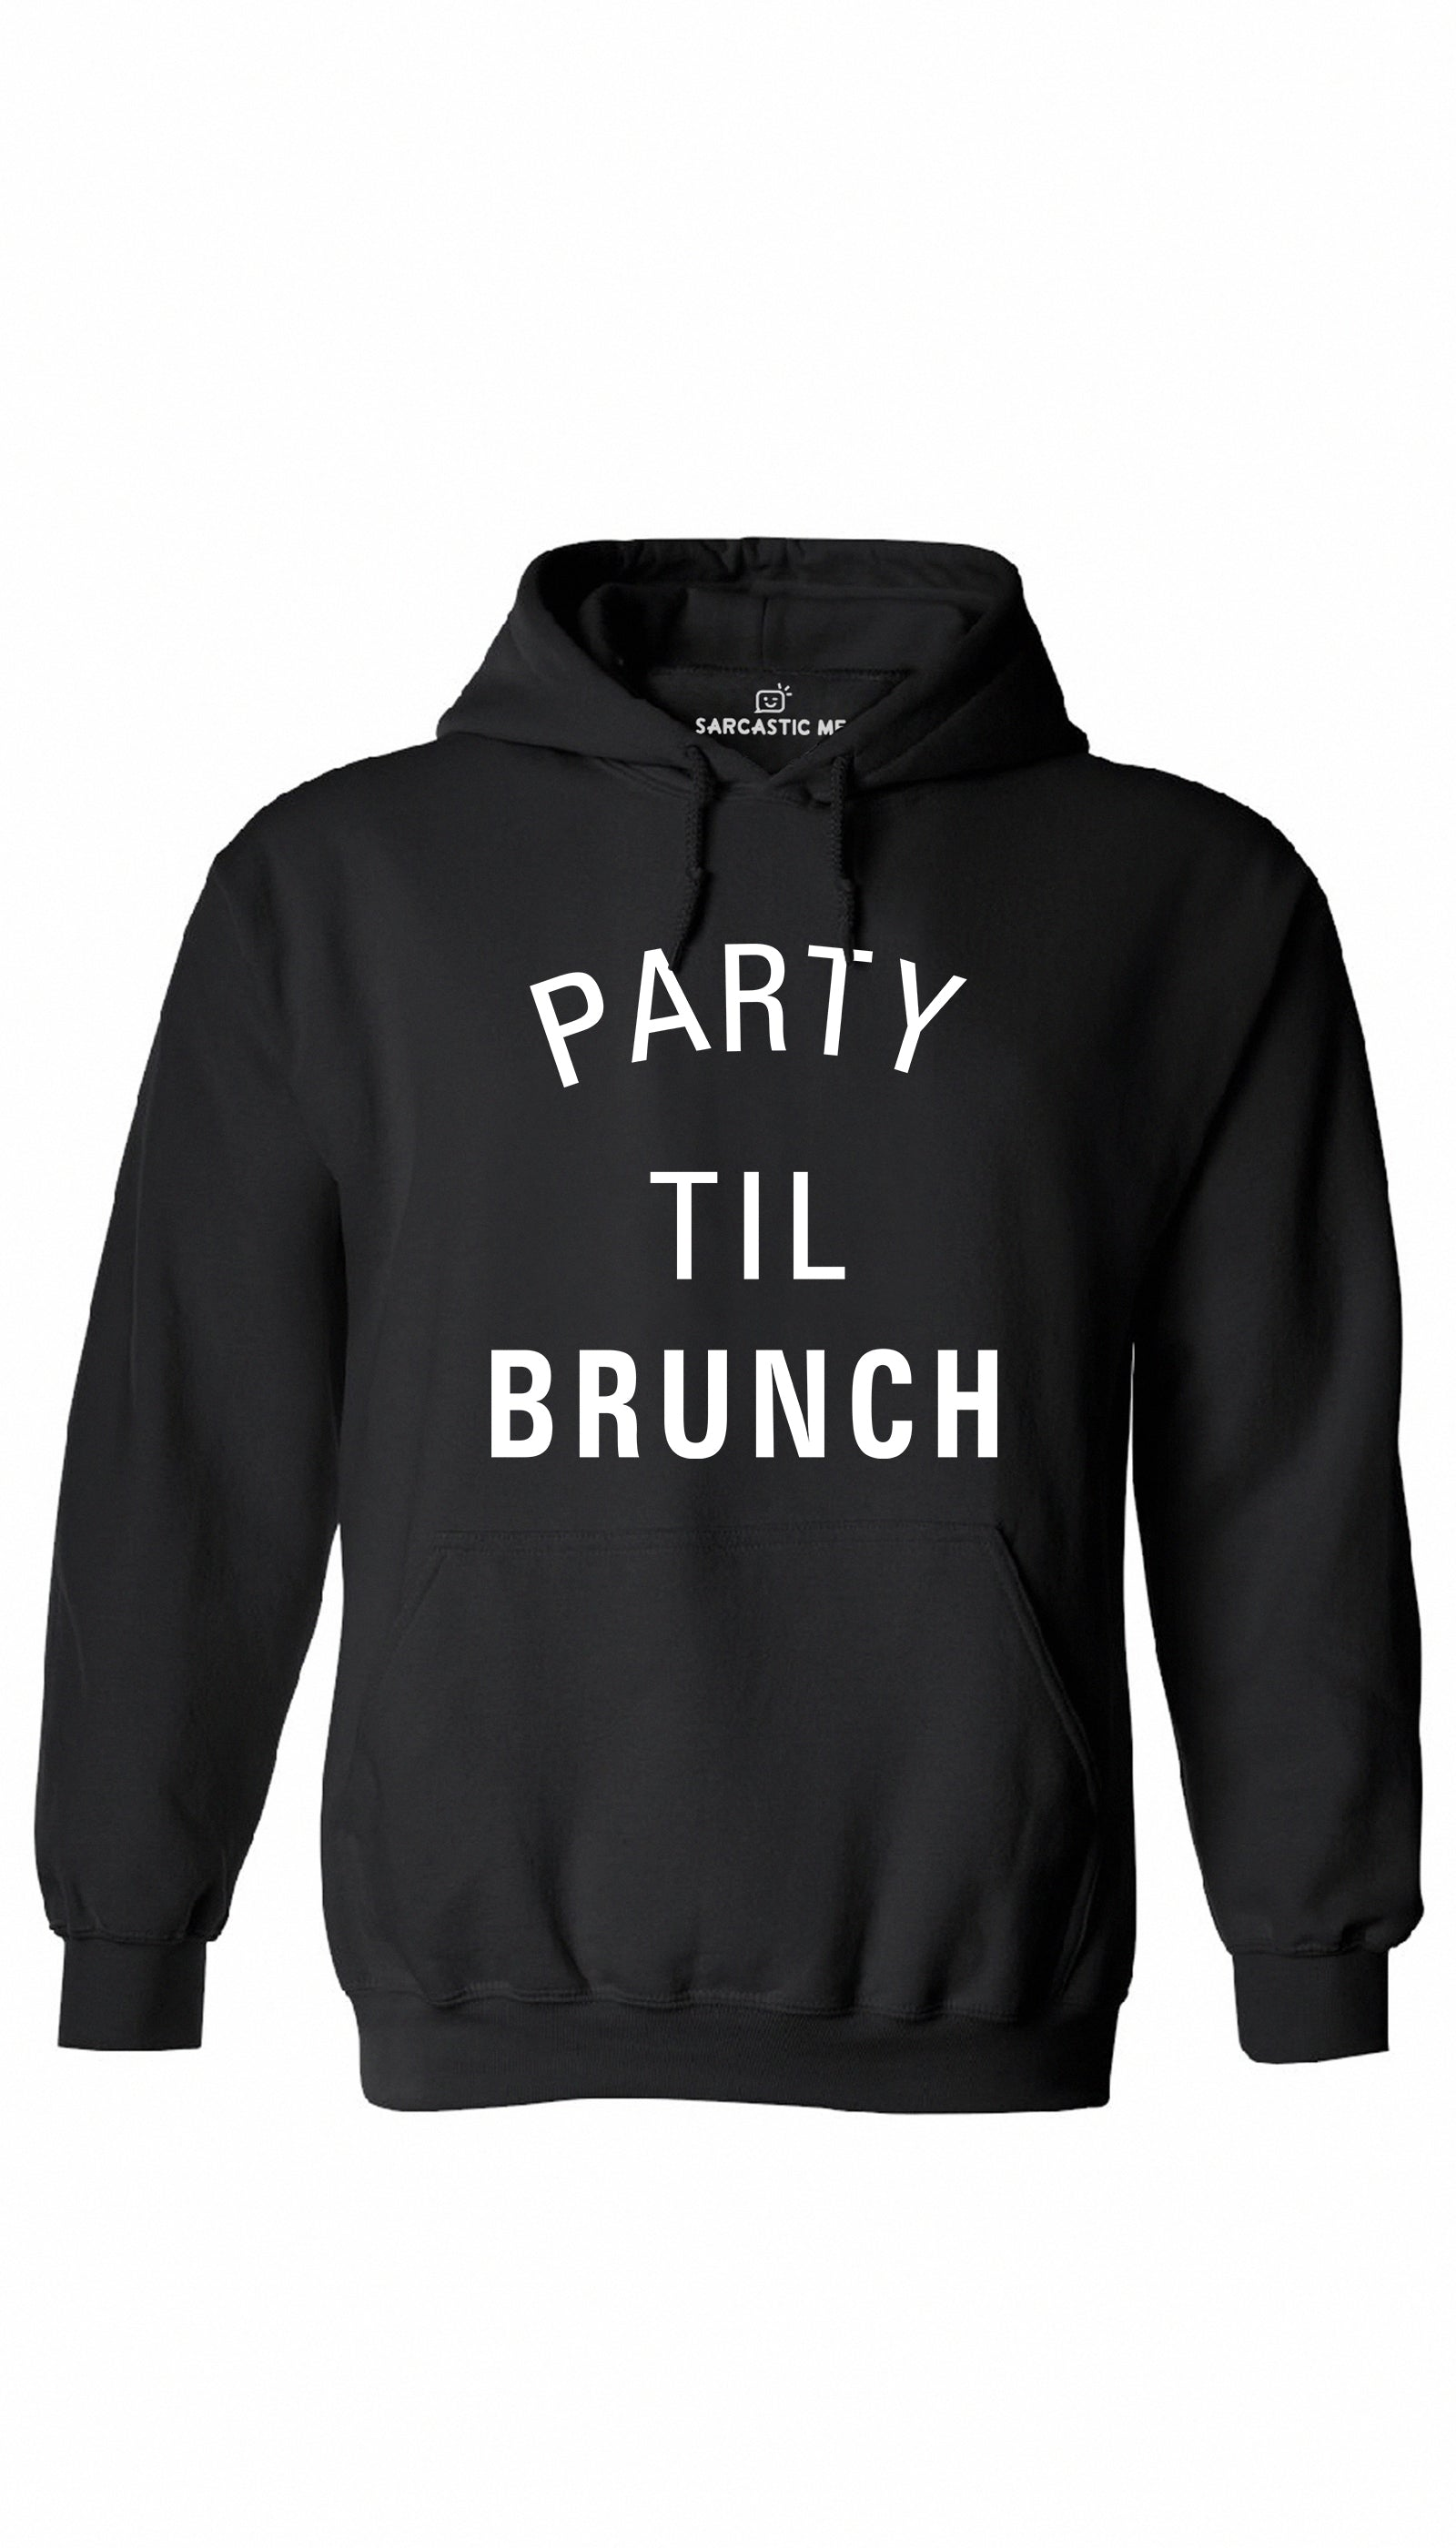 Party Til Brunch Black Hoodie | Sarcastic ME